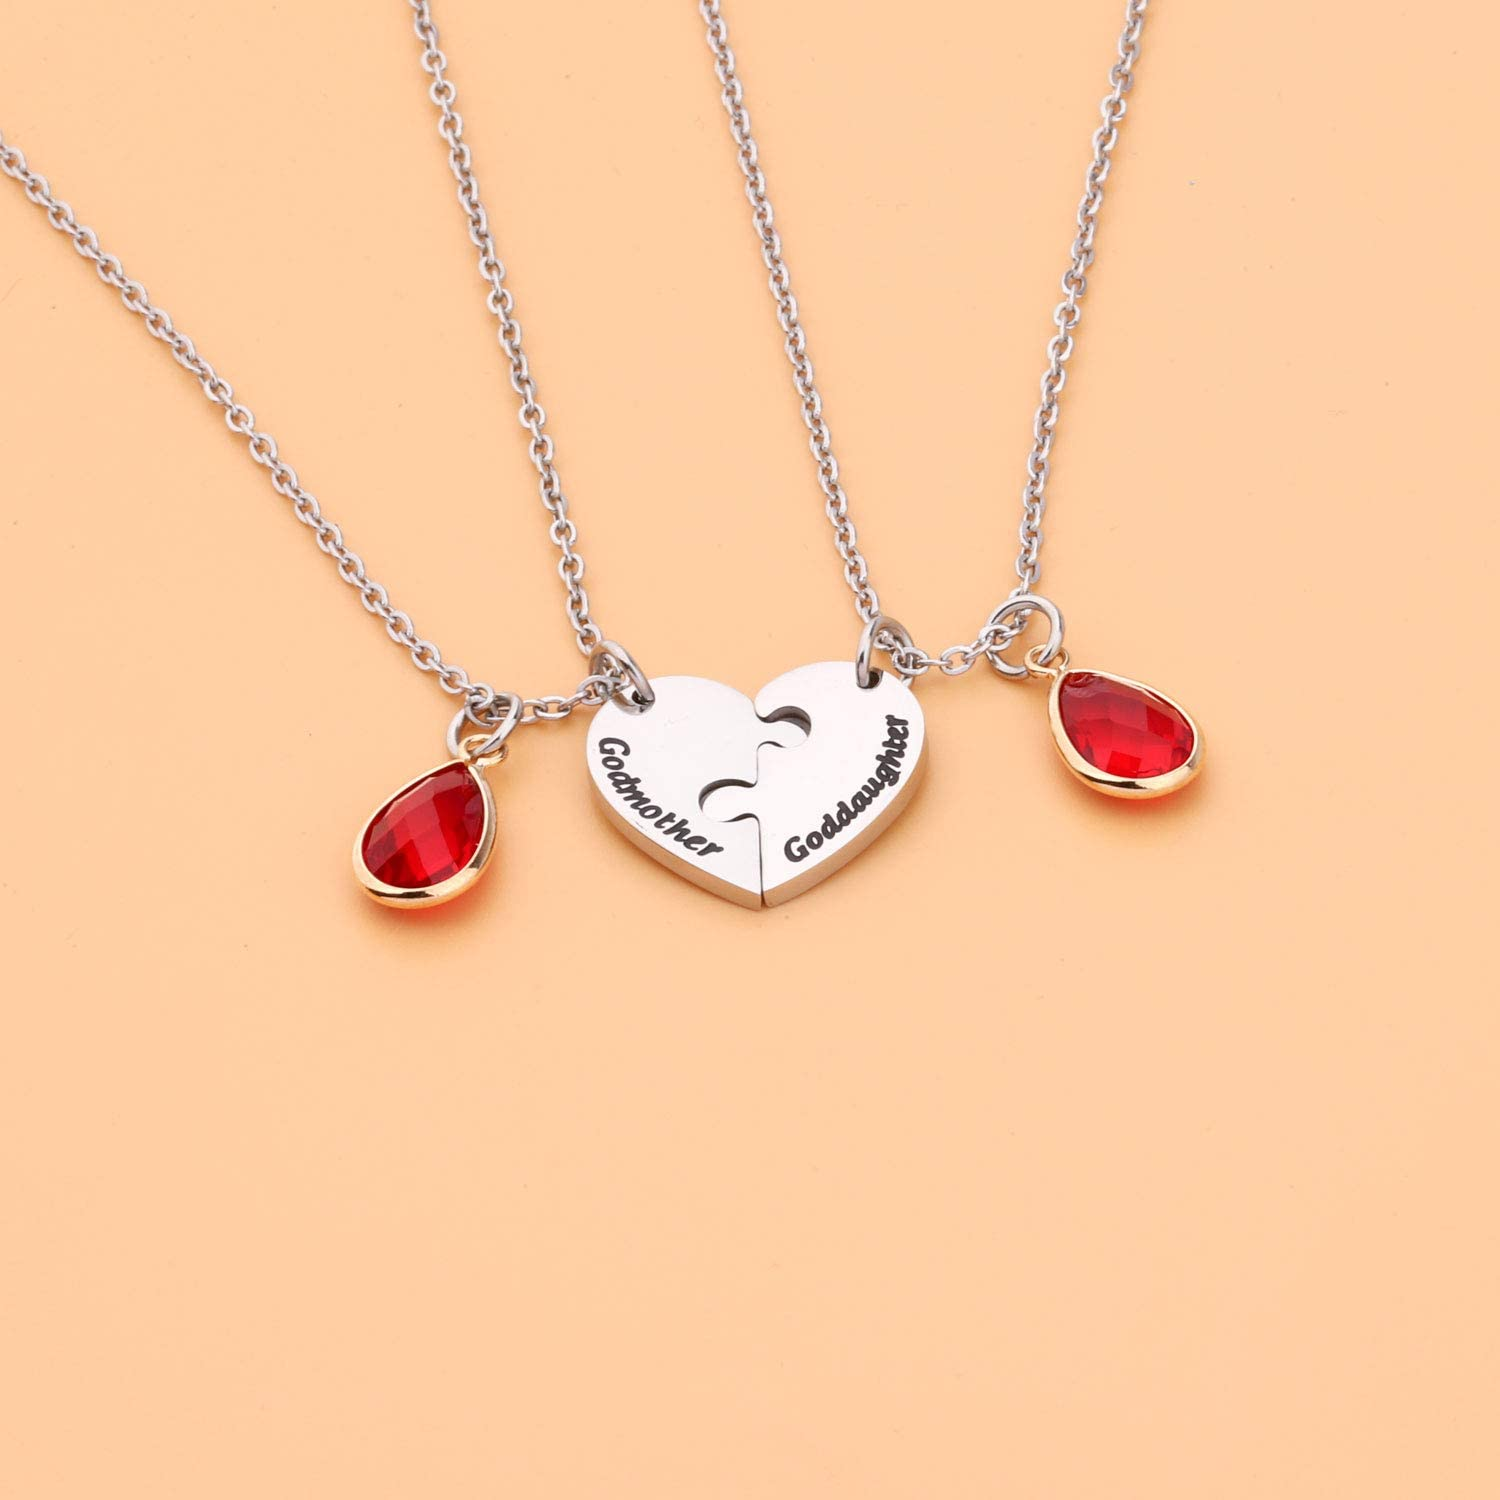 UJIMS Godmother Goddaughter Heart Matching Necklace Set Baptism Jewelry for Godmother First Communion Gift Religious Gift